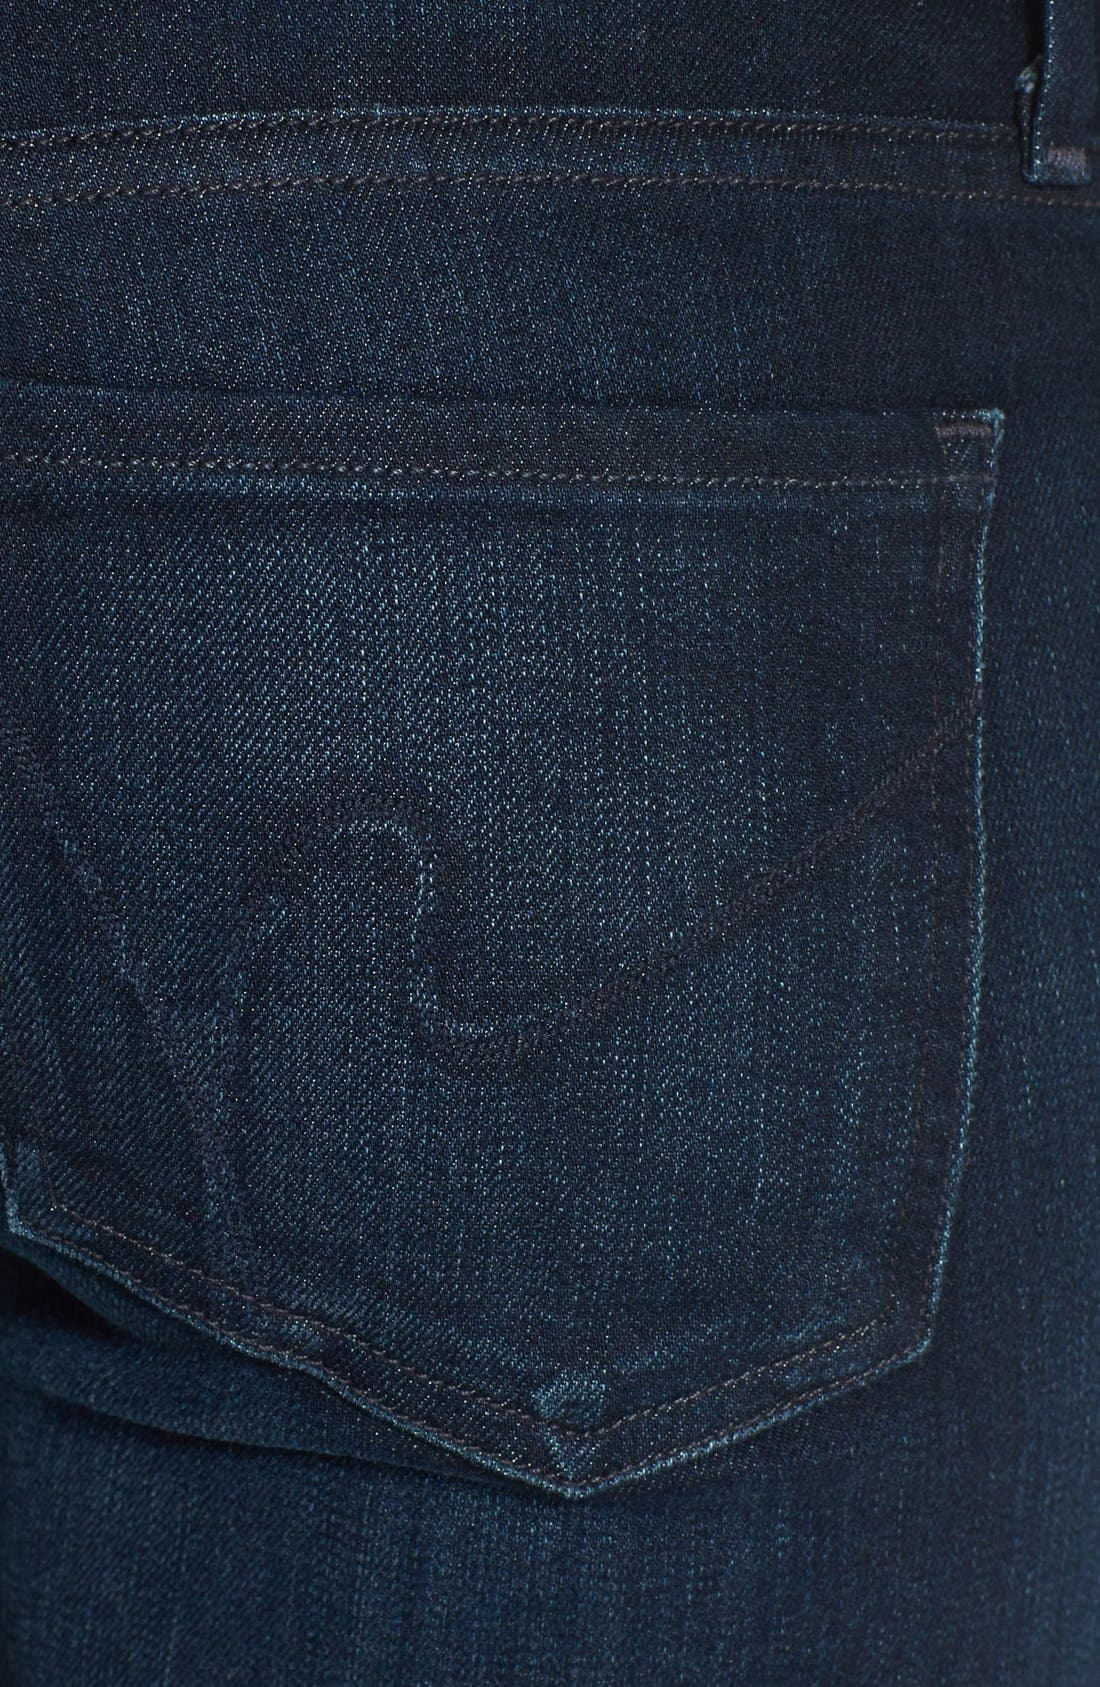 Alternate Image 3  - Citizens of Humanity 'Emmanuelle' Bootcut Jeans (Space) (Petite)